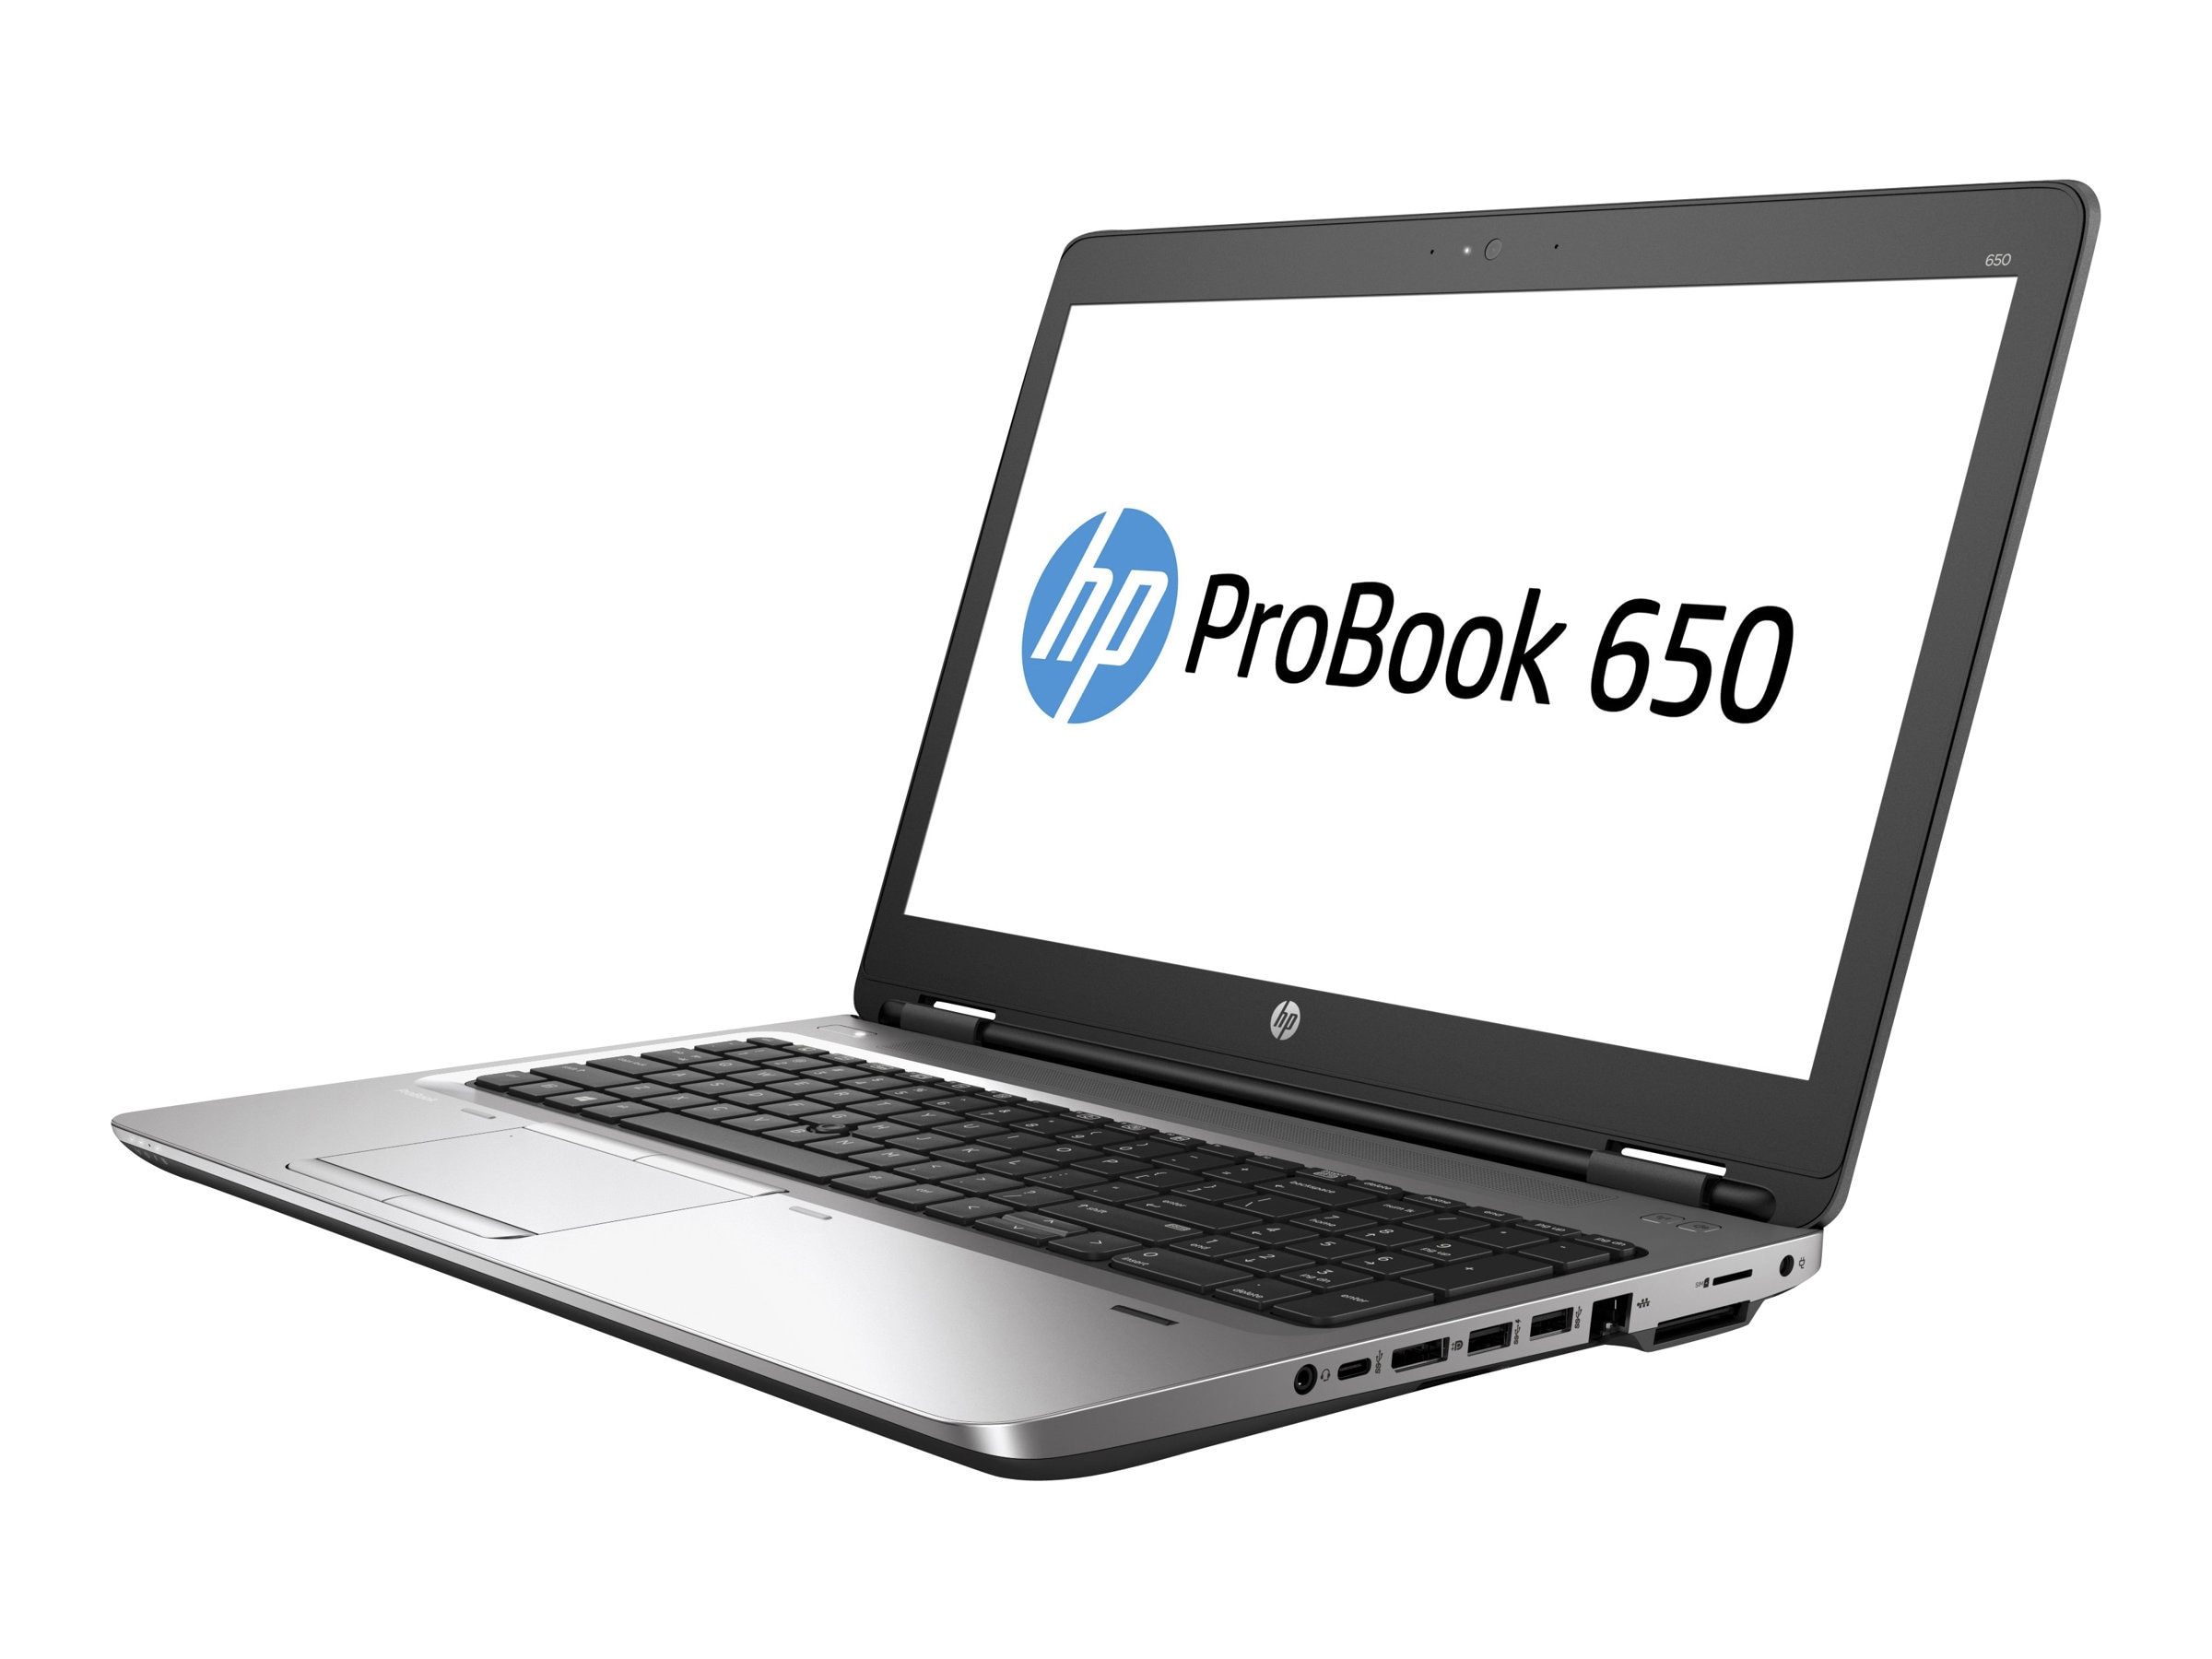 HP ProBook 650 G2 2.4GHz Core i5 15.6in display, X9V25UT#ABA